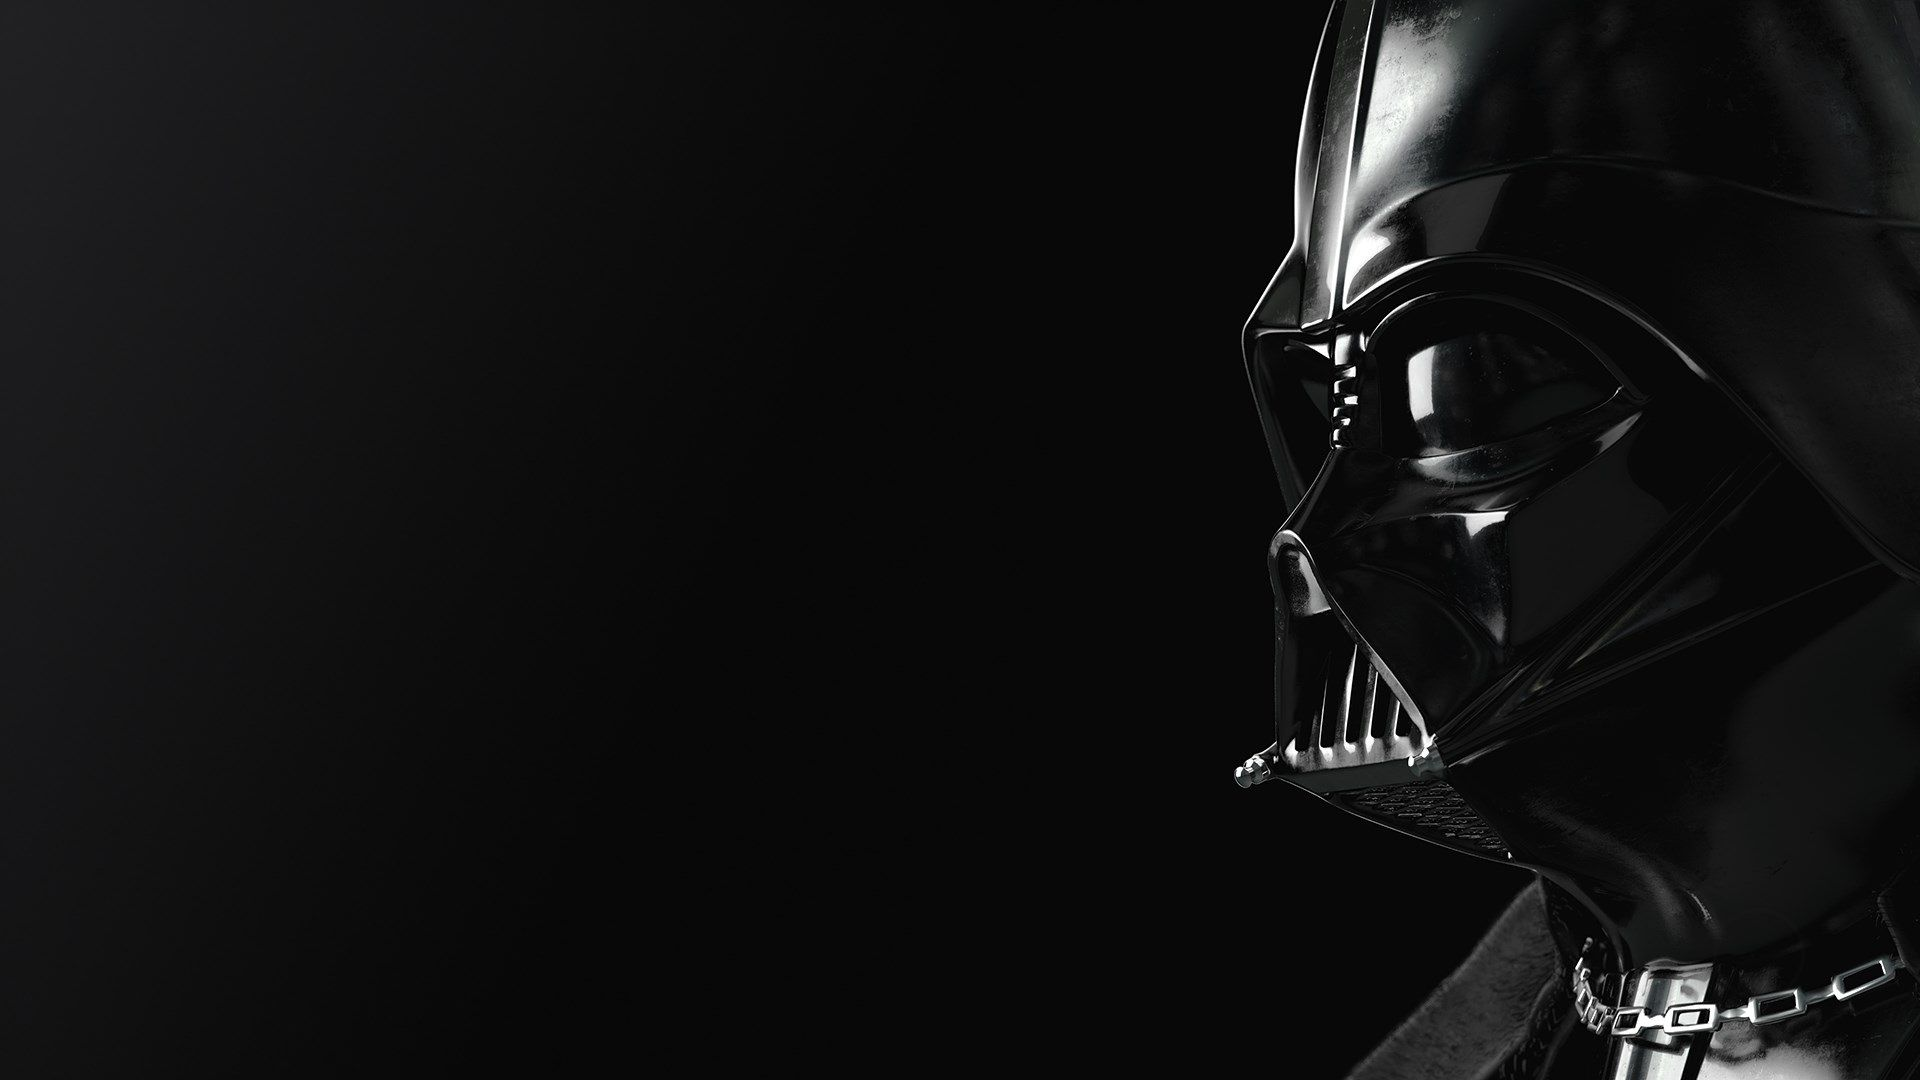 1920x1080 Star Wars Free Download Wallpaper For Pc Star Wars Wallpaper Darth Vader Wallpaper Star Wars Darth Vader